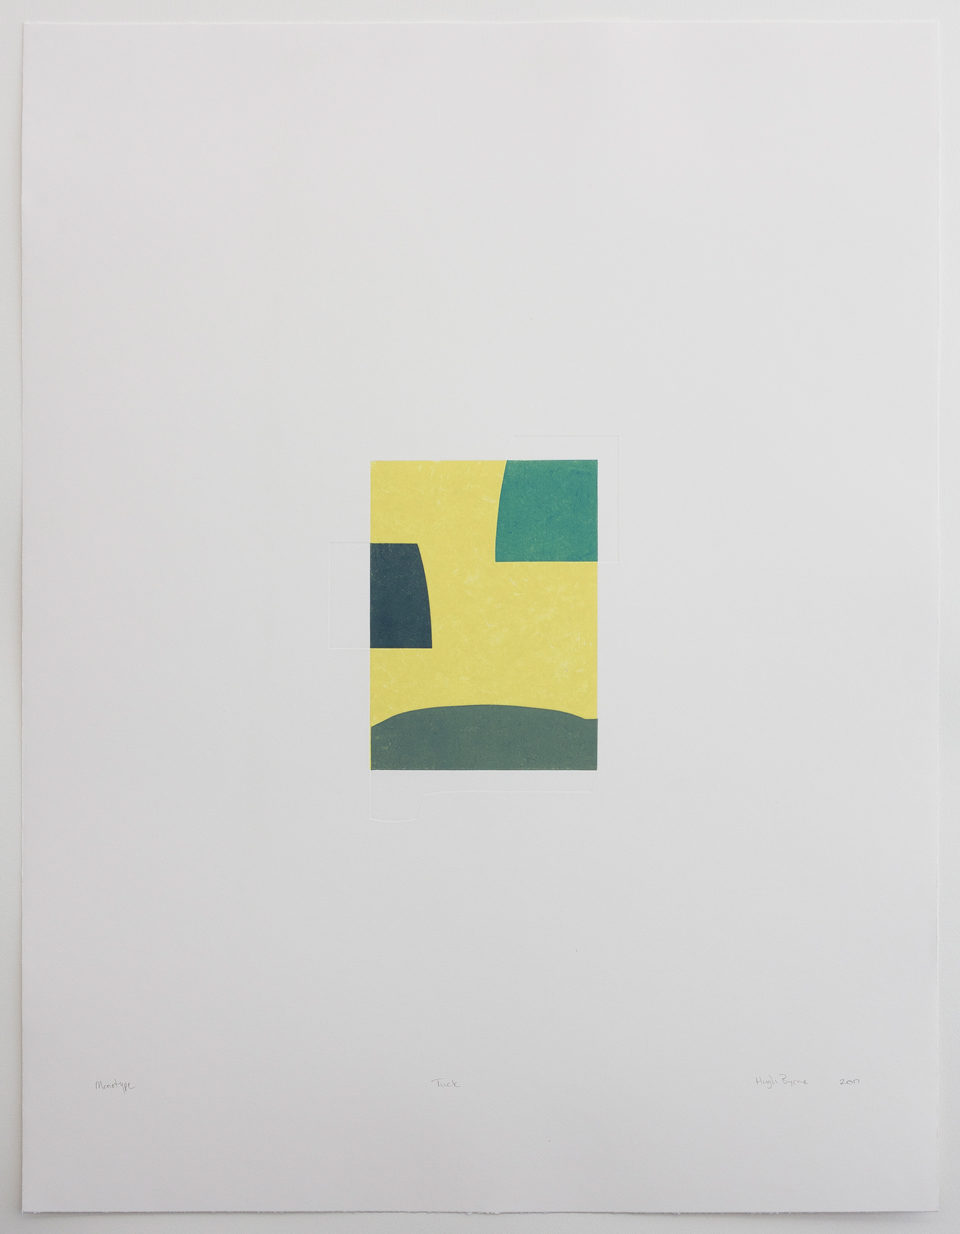 Hugh Byrne, Tuck, Monotype, Prints